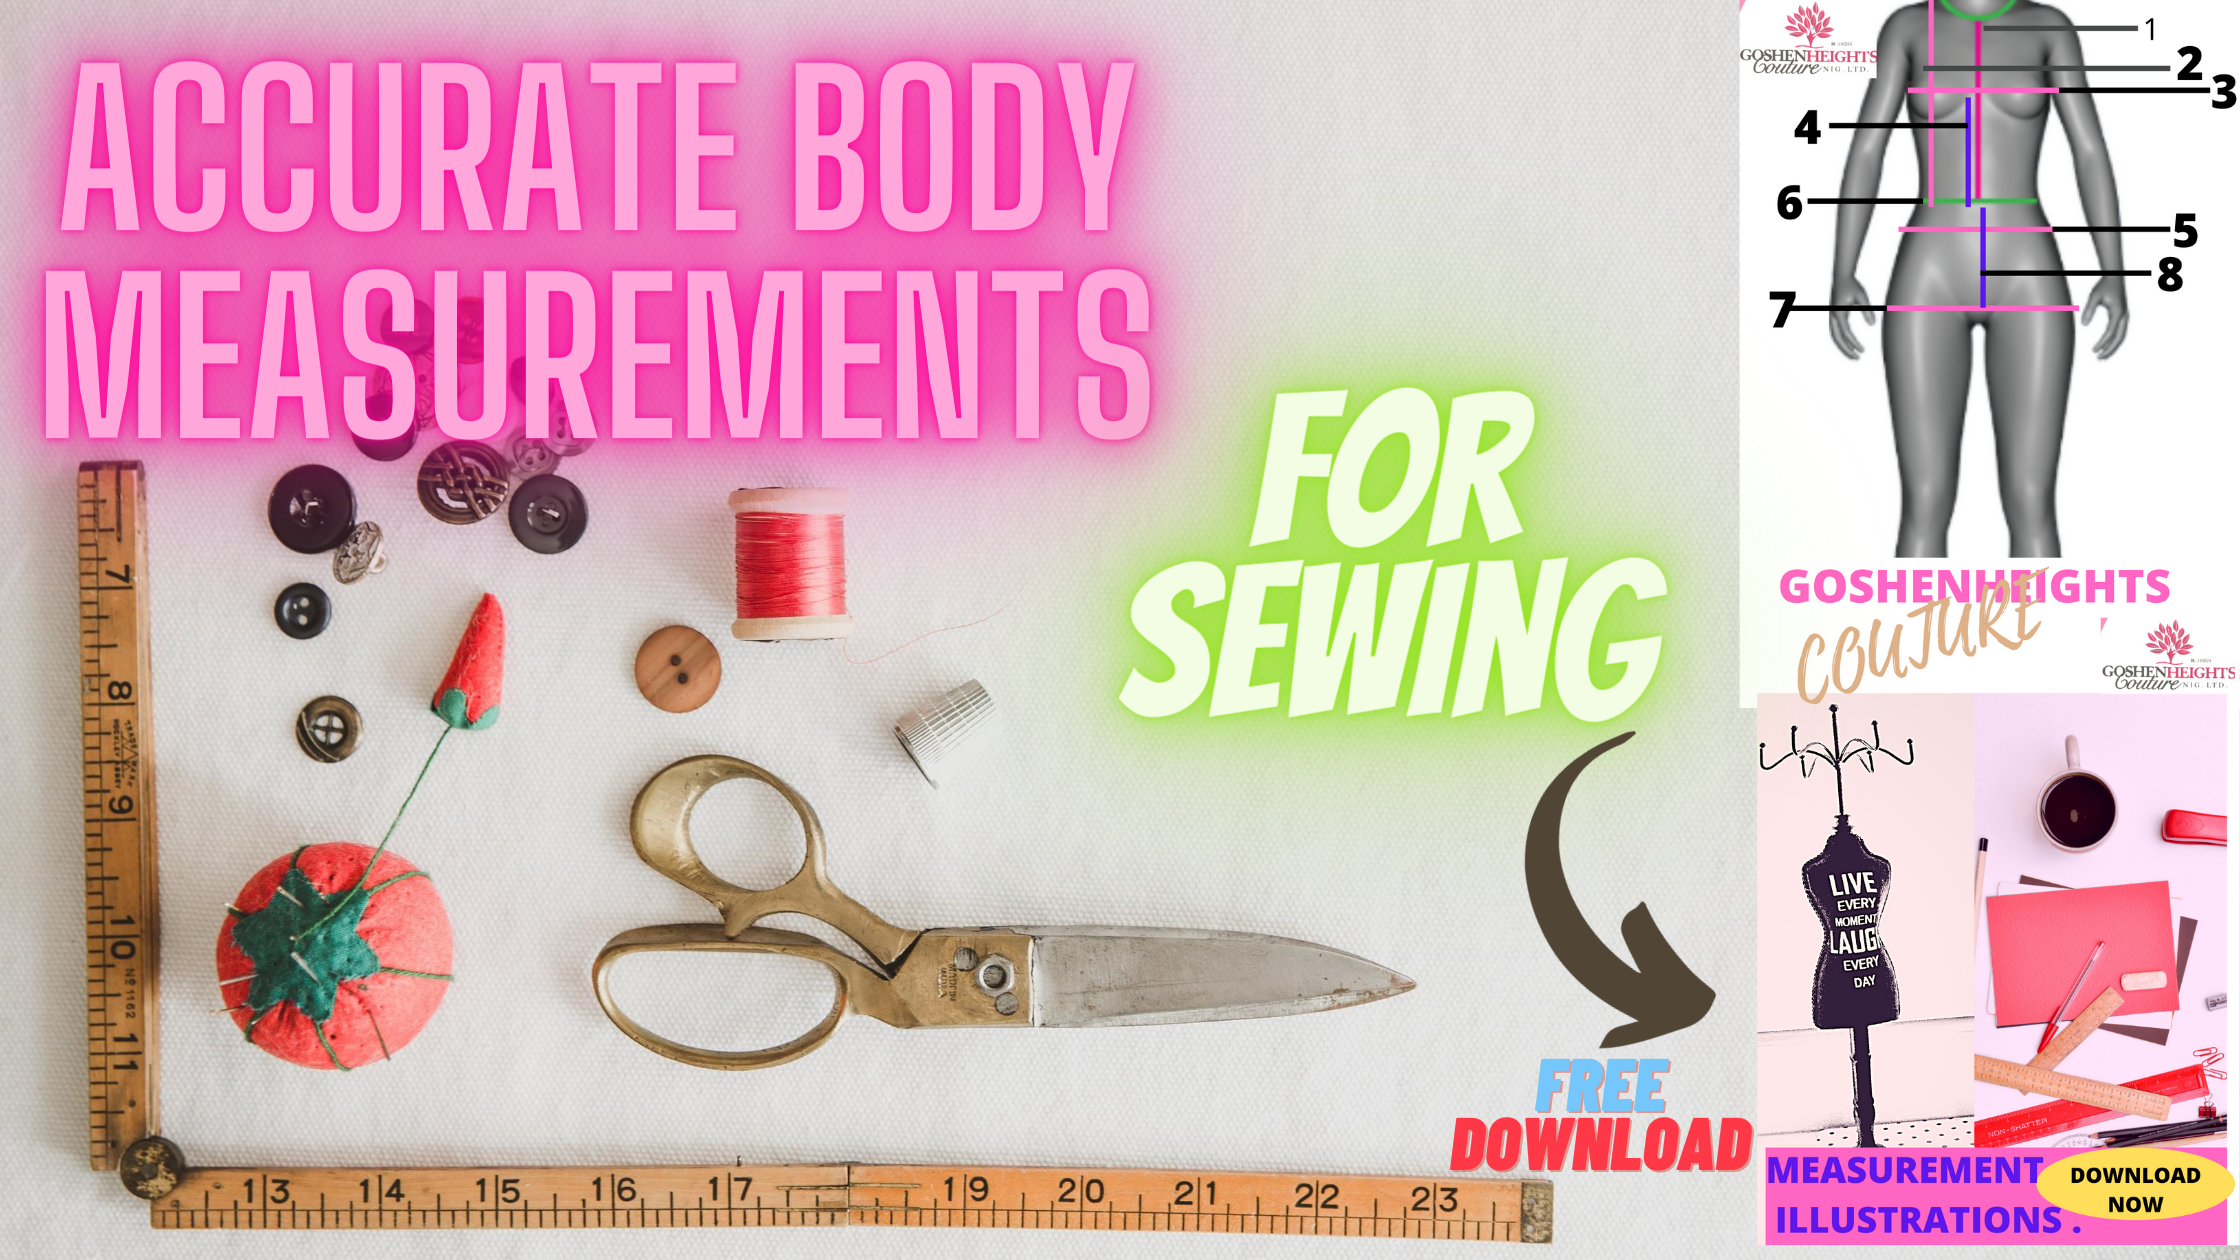 ACCURATE BODY MEASUREMENTS FOR DRESS MAKING